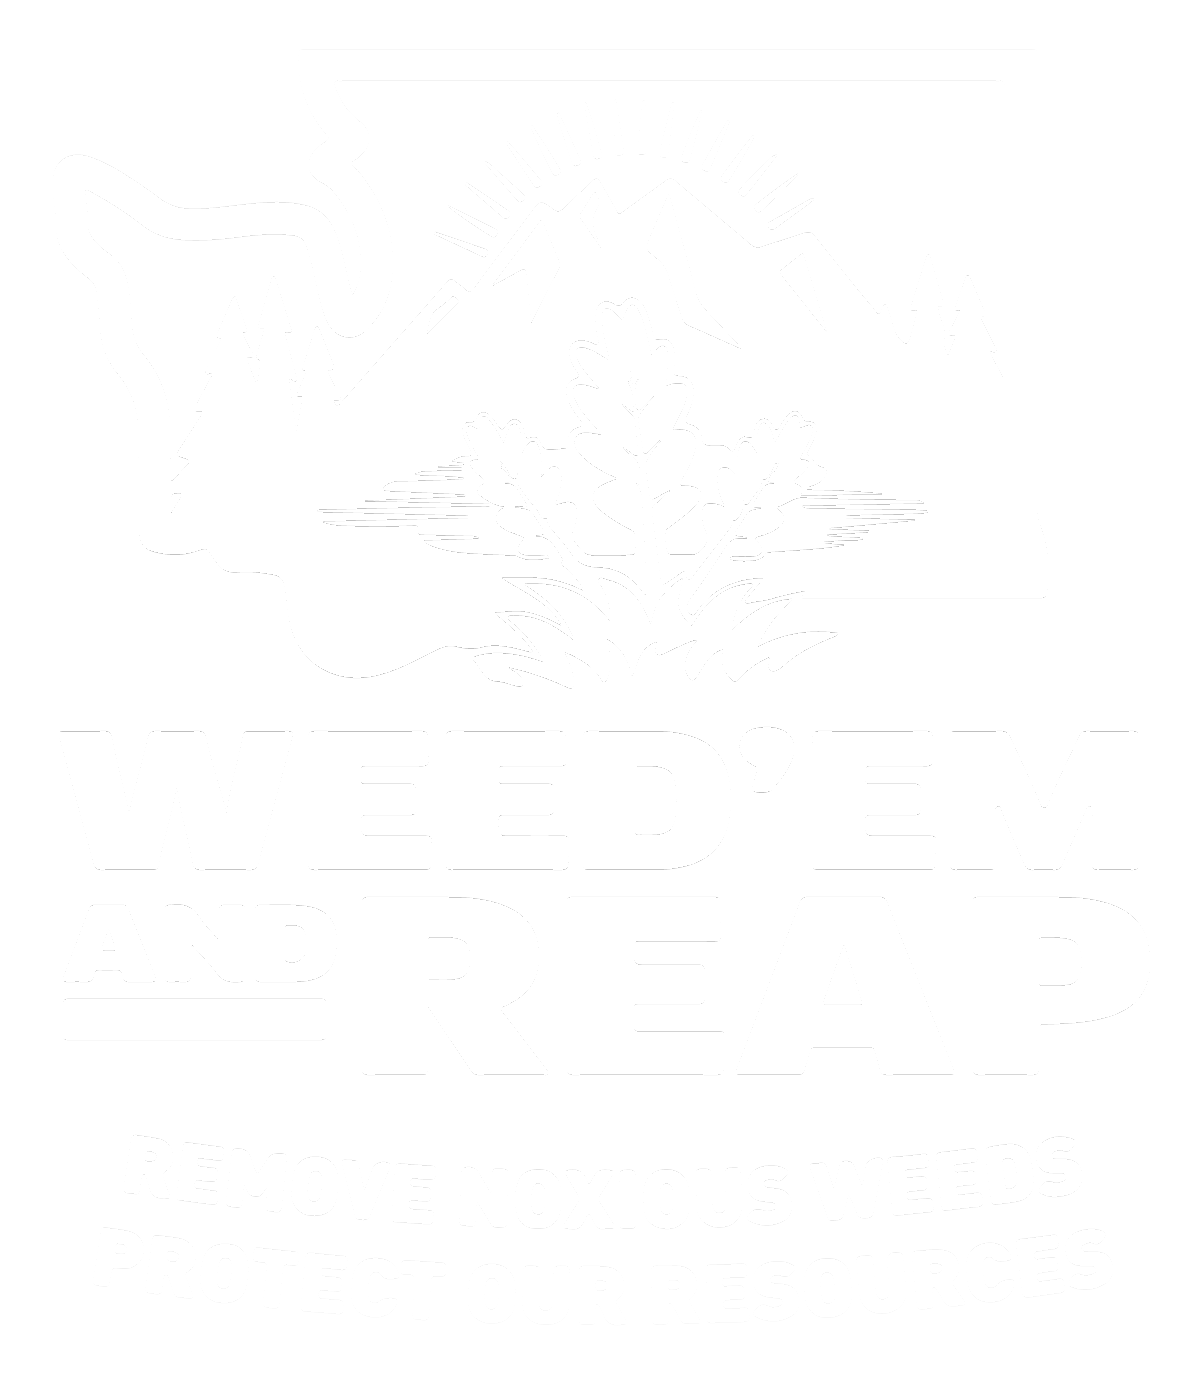 Noxious Weeds Damage Our Resources